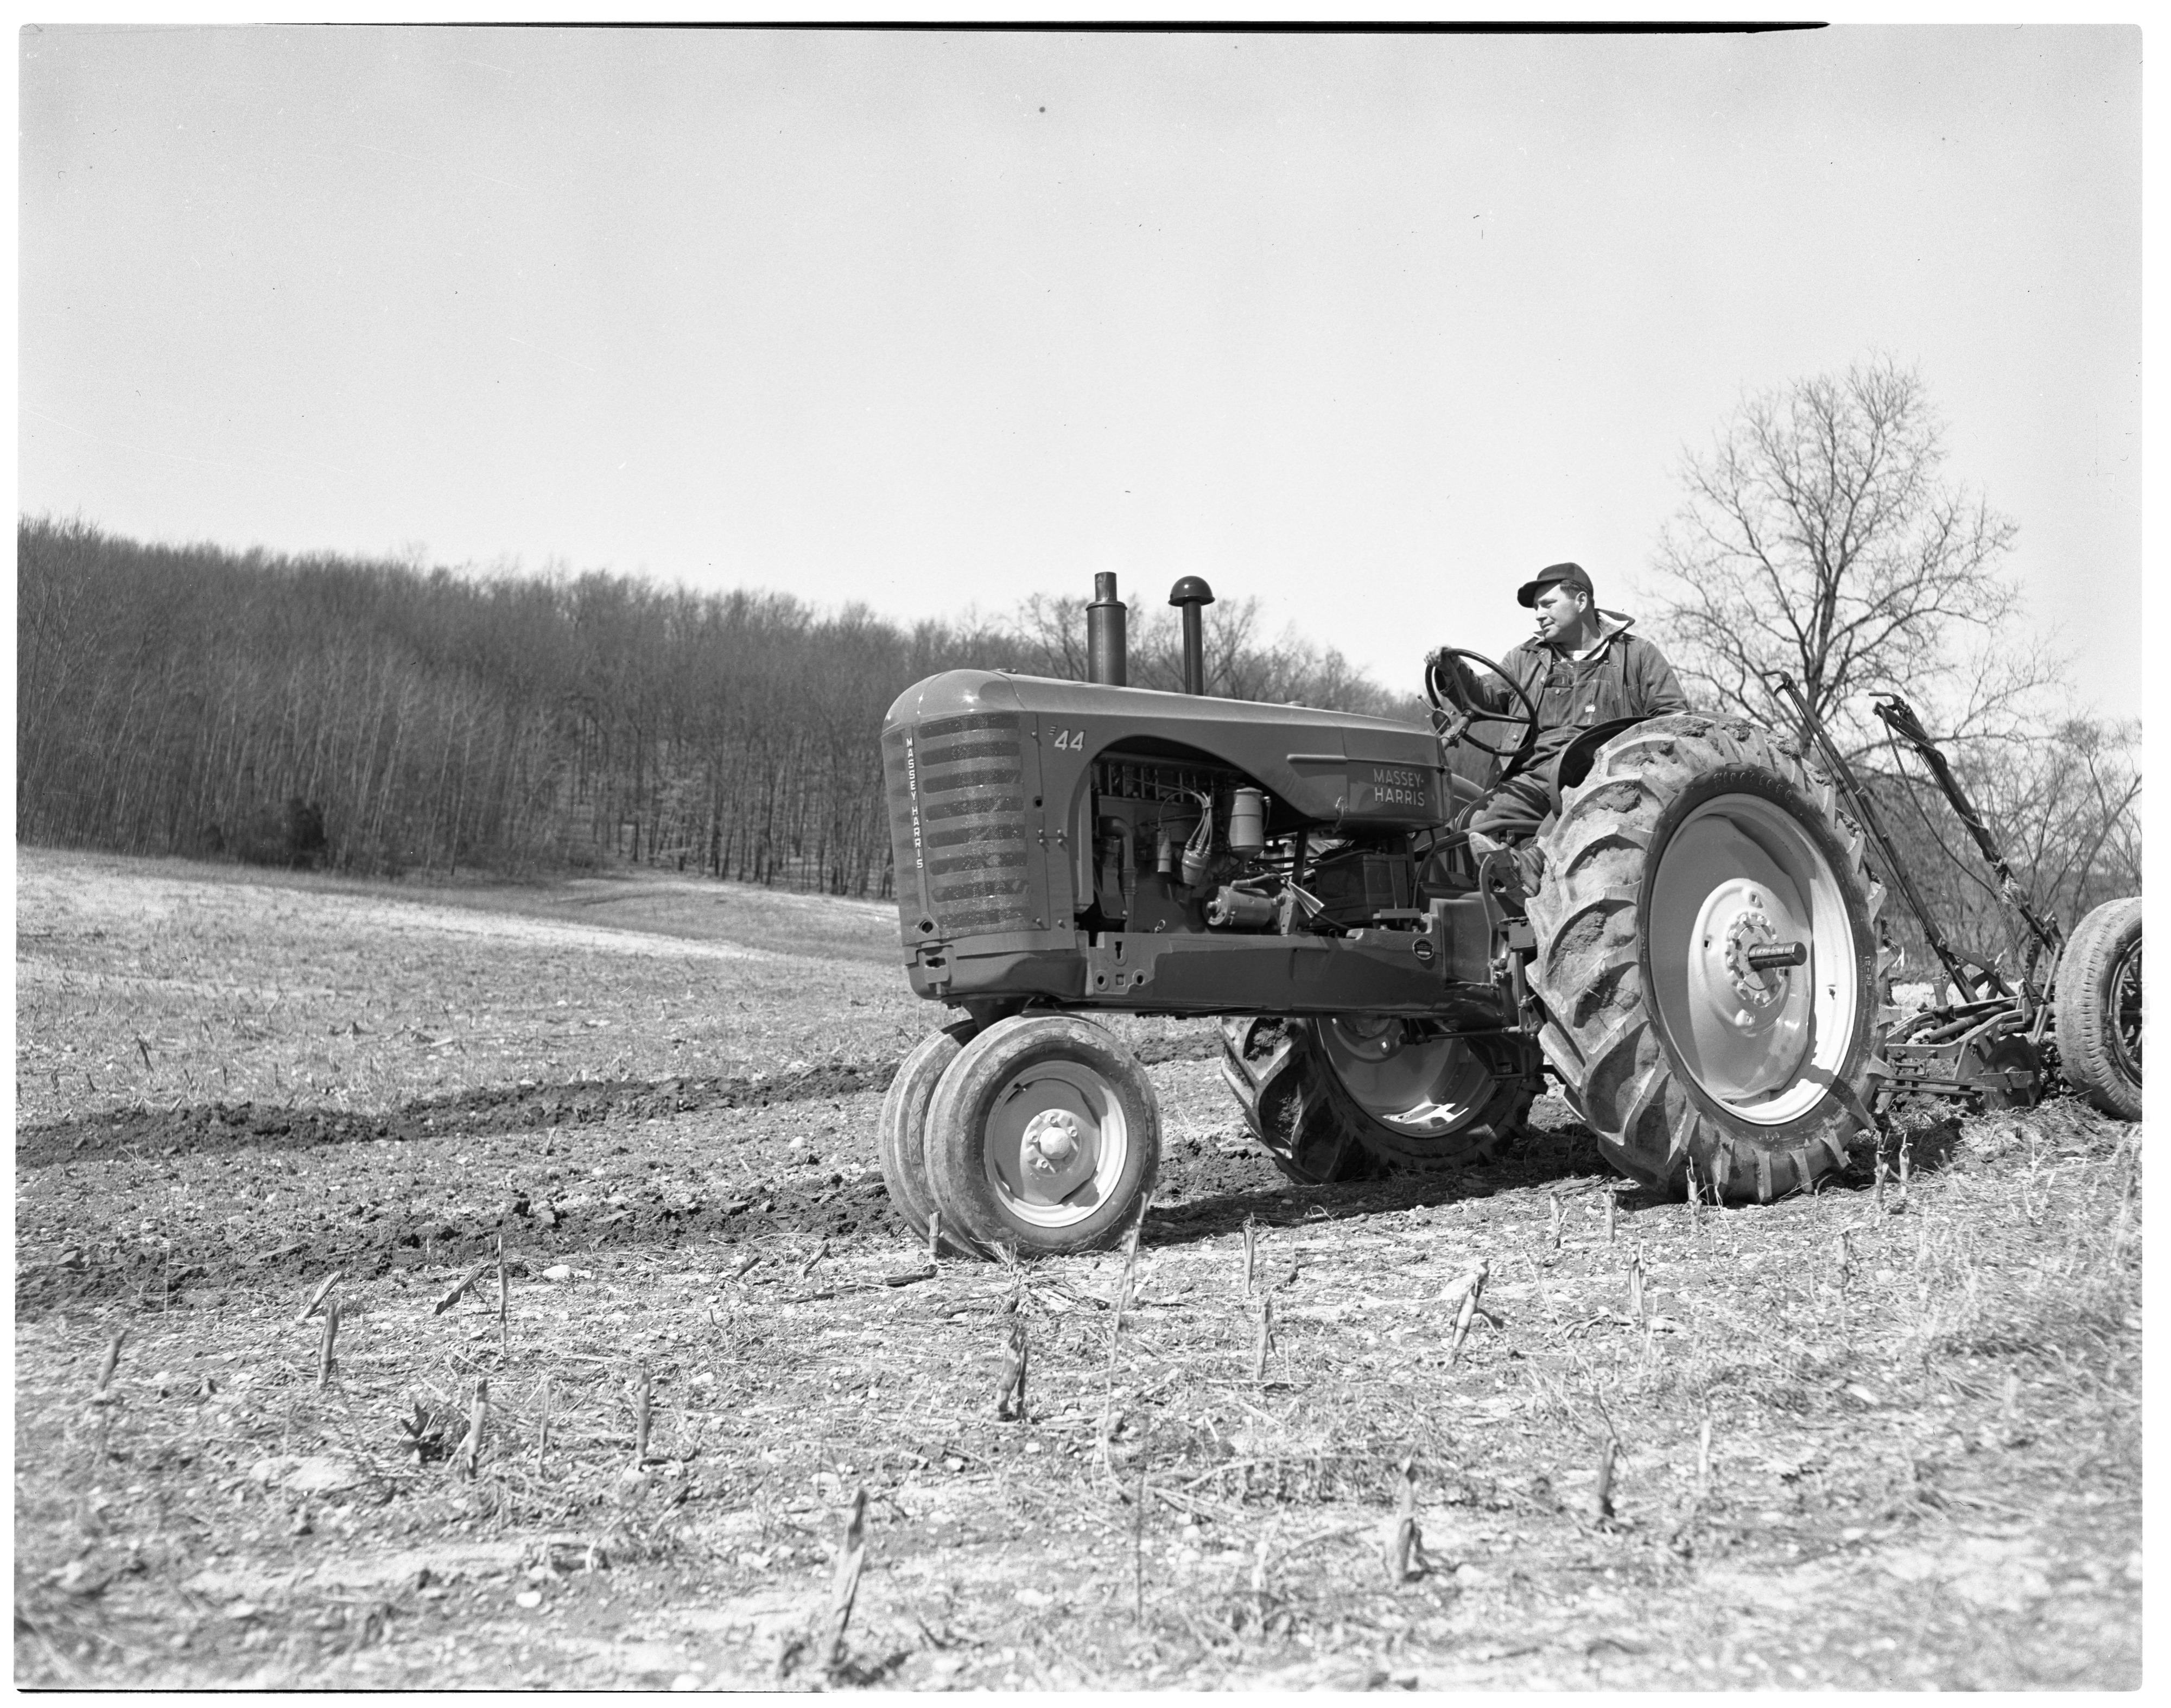 Massey-Harris Tractor Plows Warren Murdoch Farm, April 1949 image